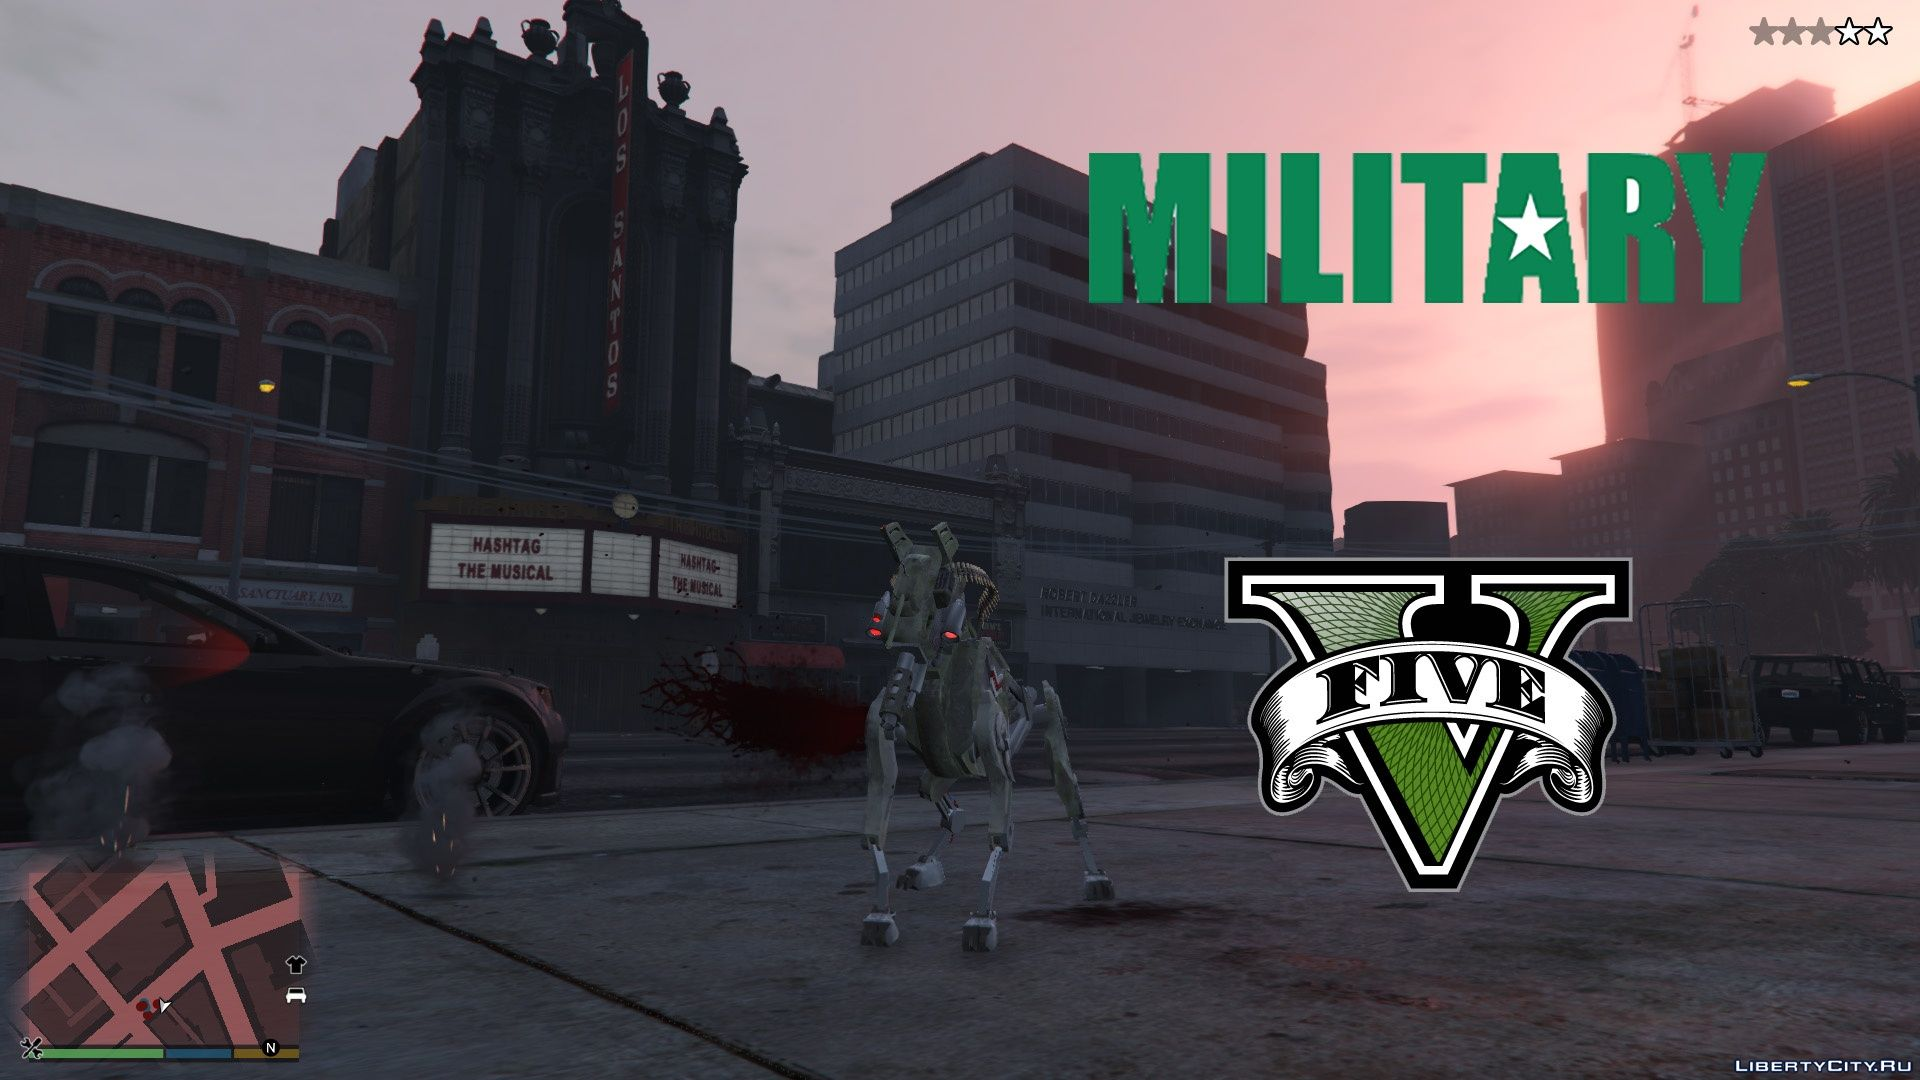 Skins for GTA 5: 1871 skin for GTA 5 / Files have been